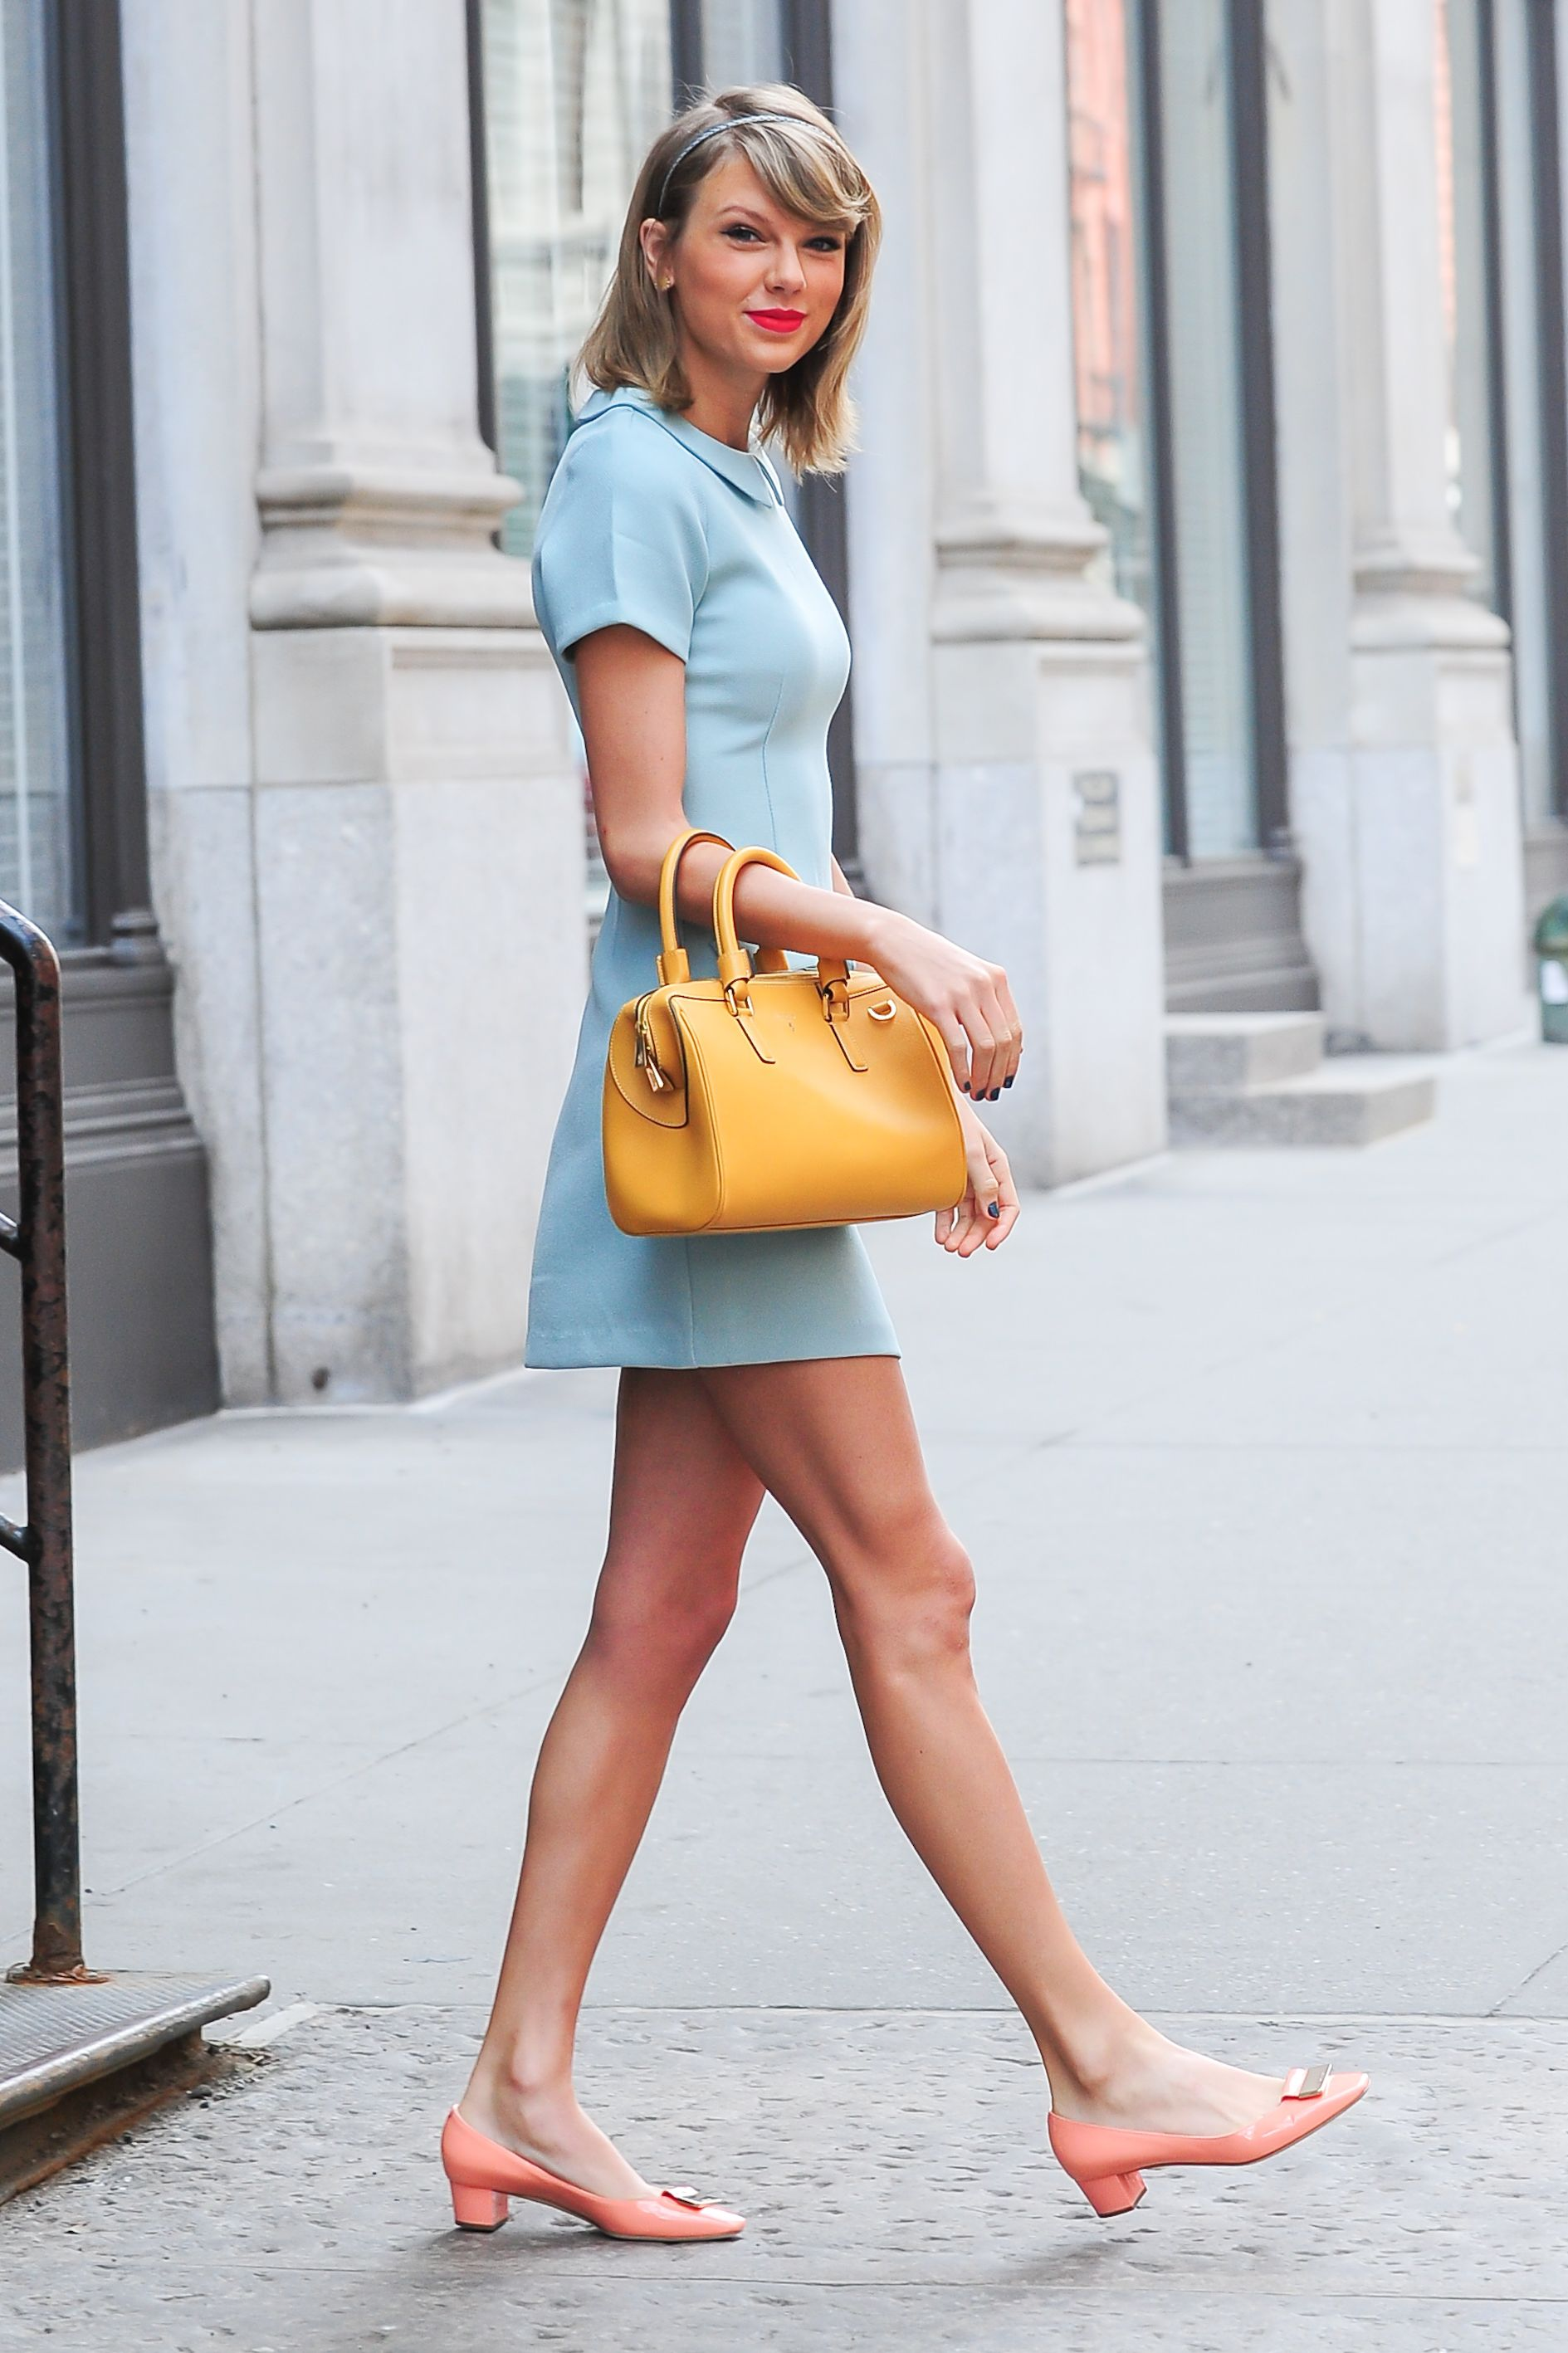 Taylor Swift Play with cool pastels and bright accessories (and let's not forget the red lip) all in one look when you're already over the color white.